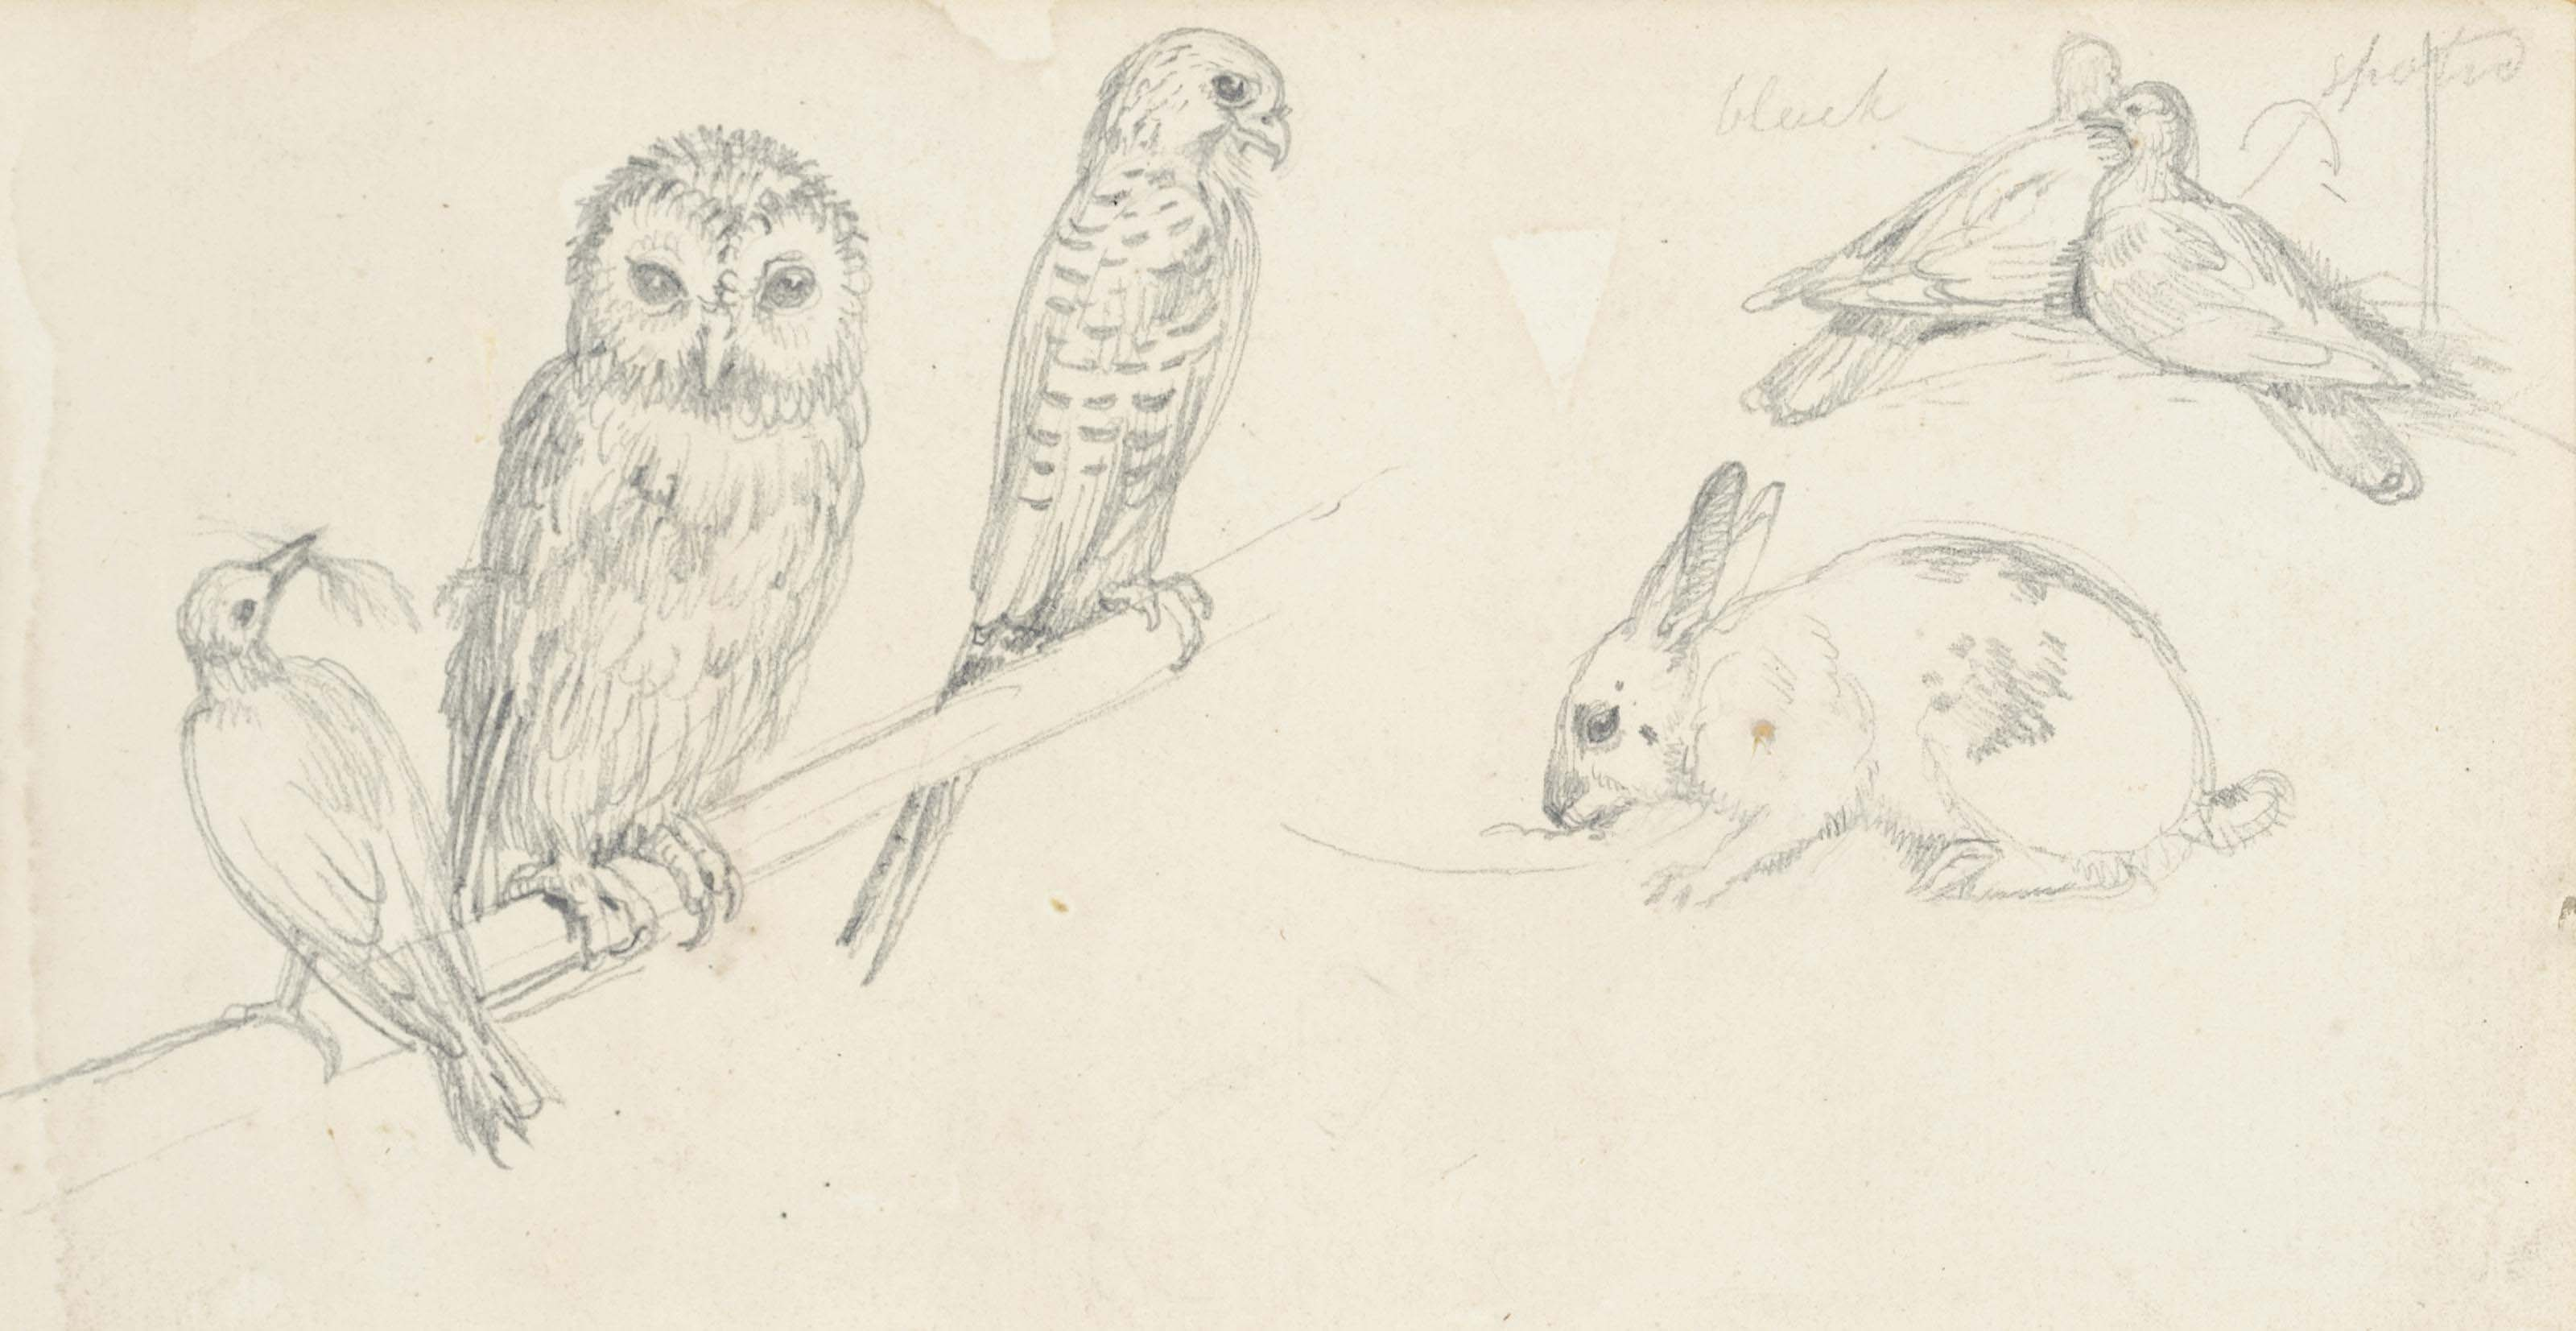 An owl, a rabbit and other animals